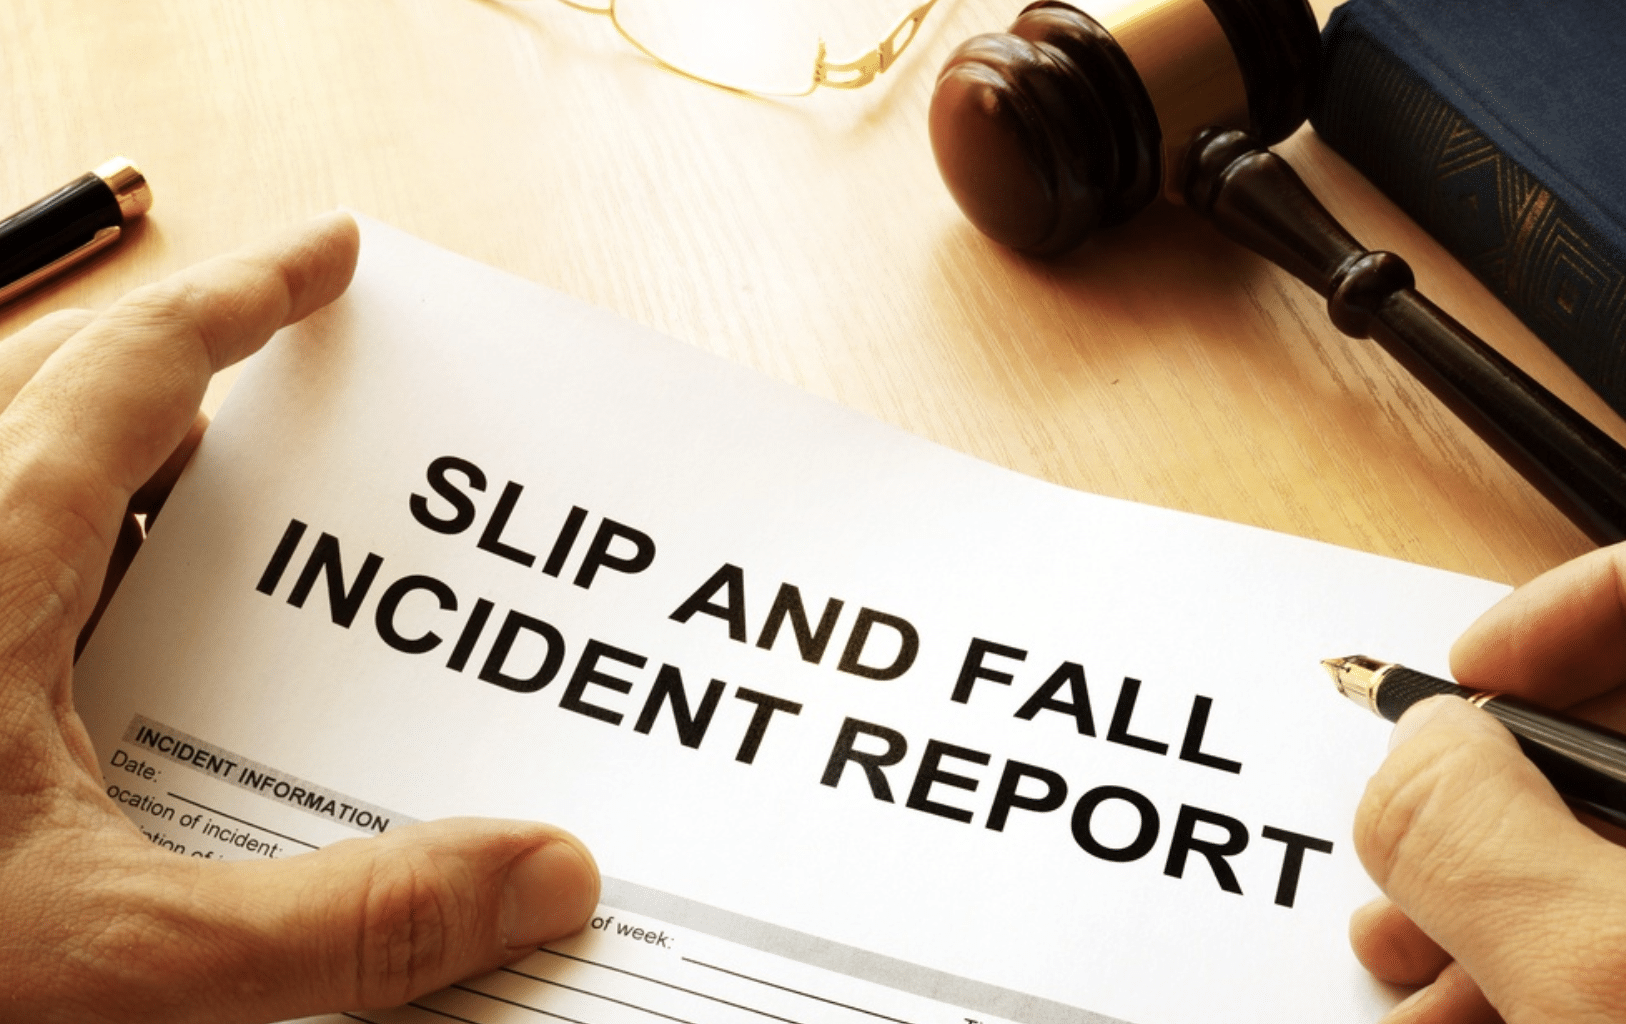 slip and fall incident report